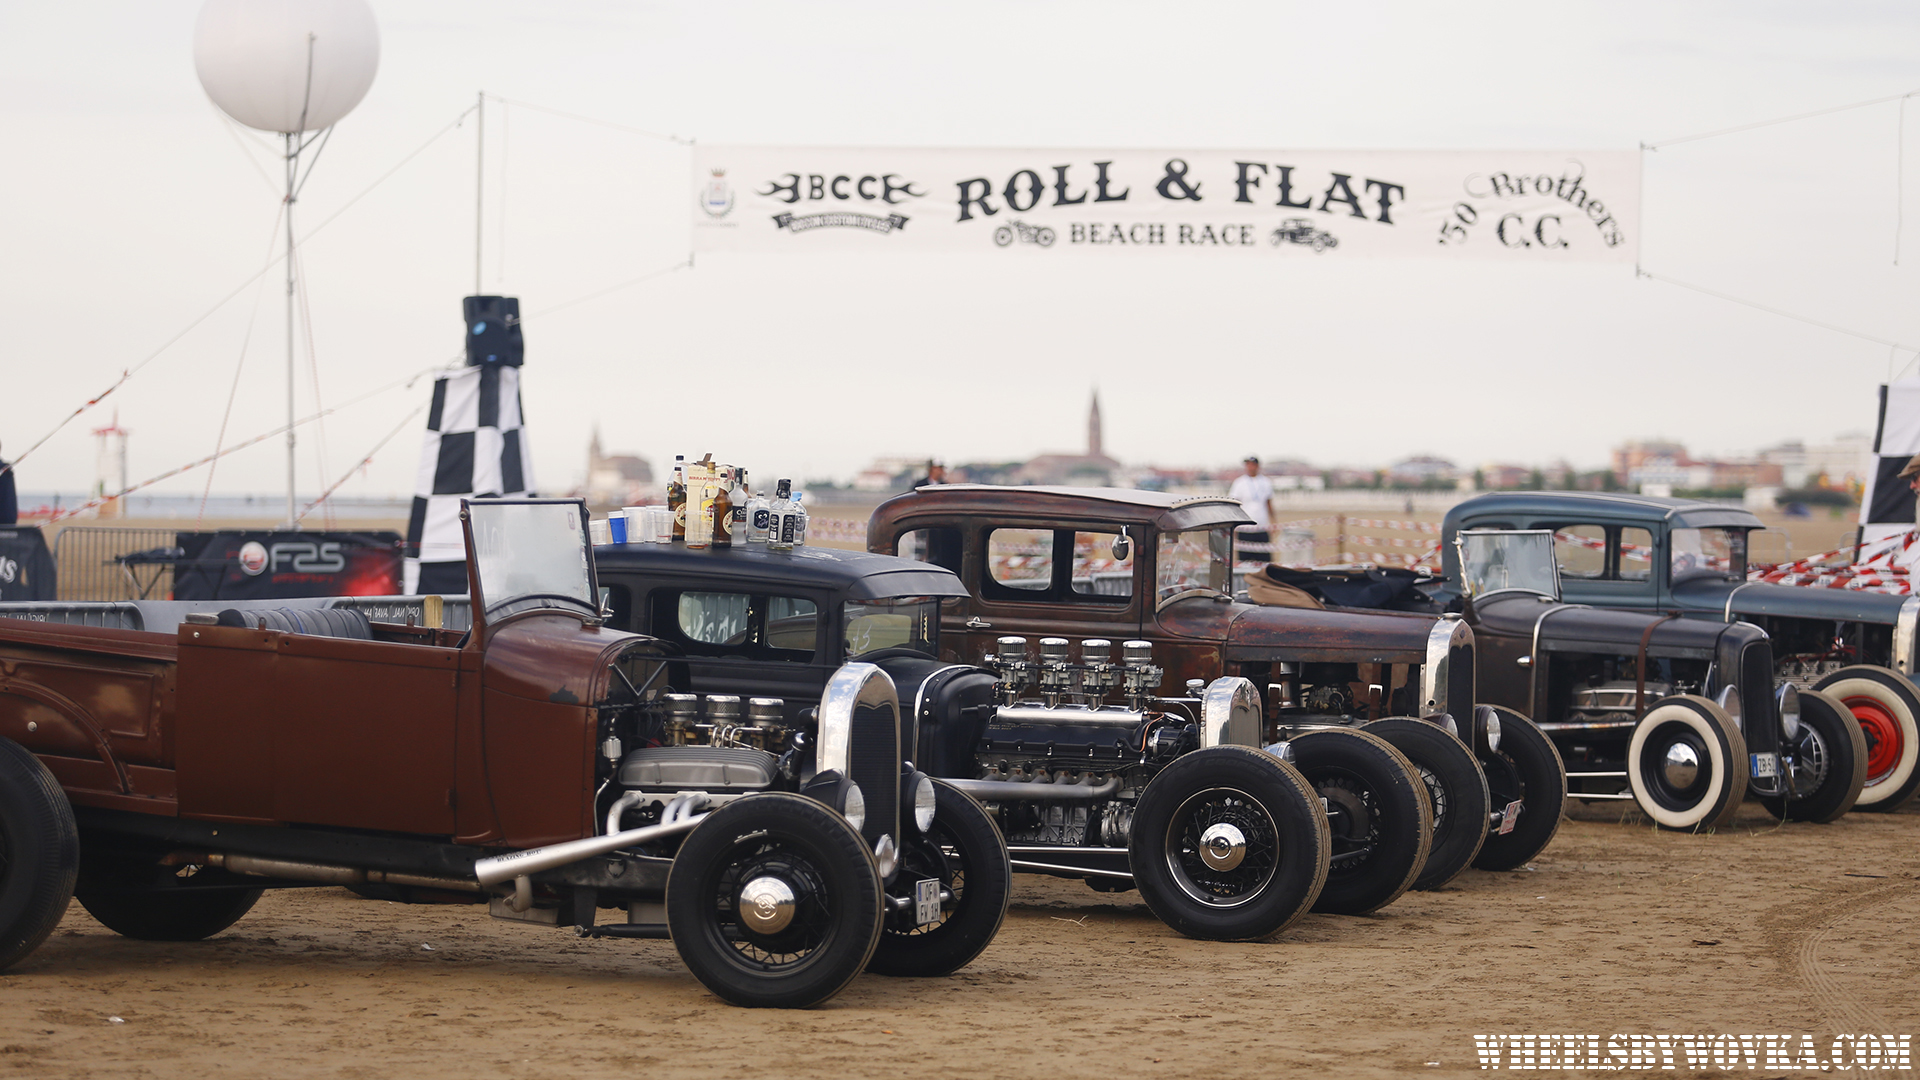 roll-flat-venice-hot-rod-beach-race-trog-by-wheelsbywovka-11